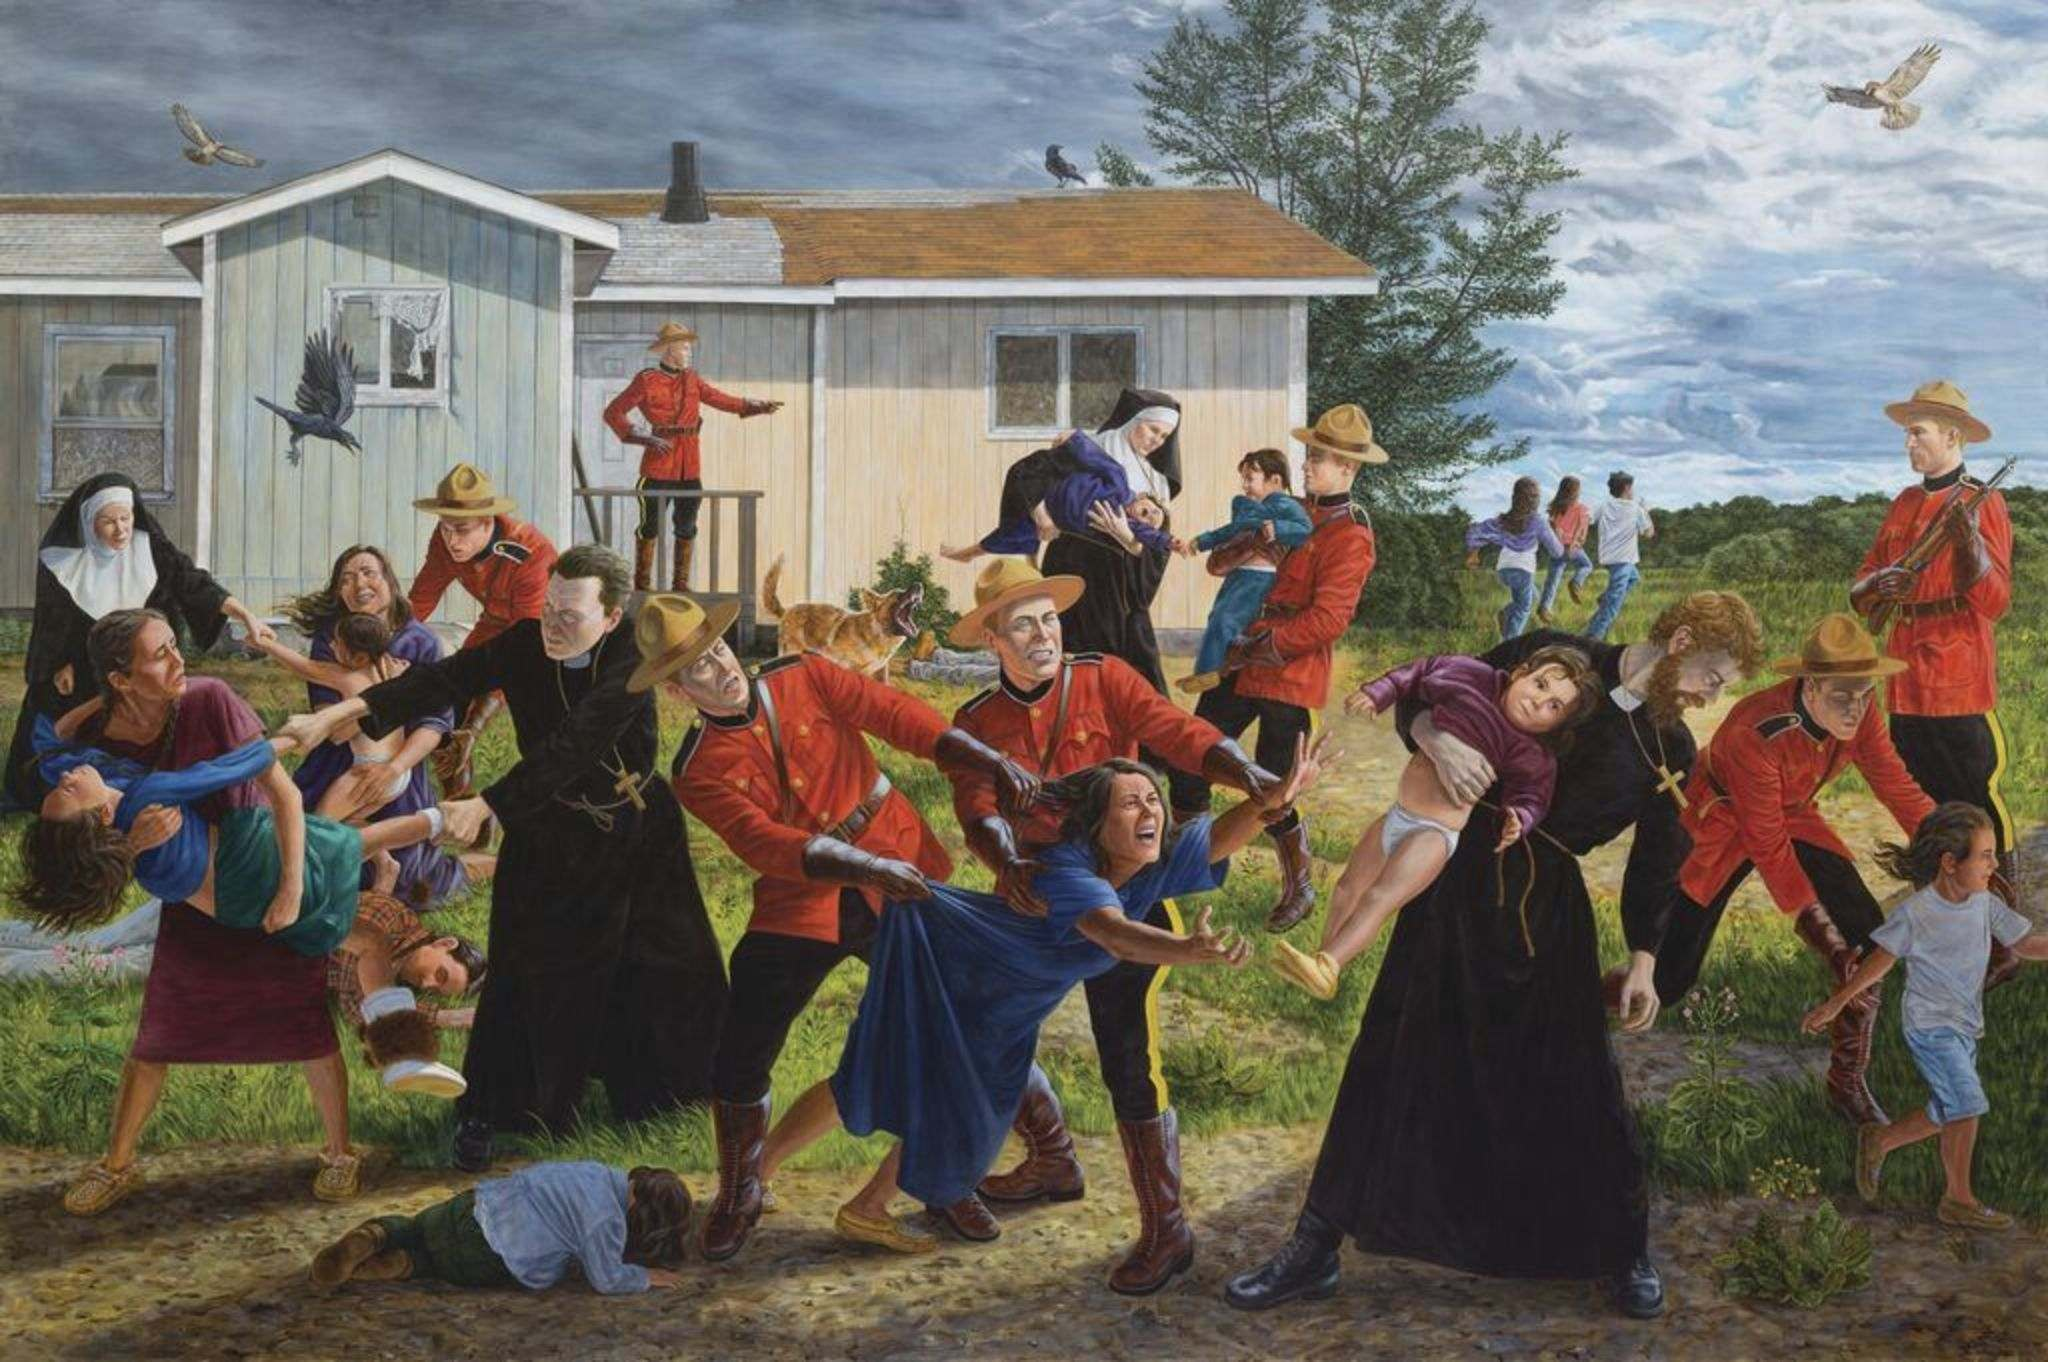 </p><p>Kent Monkman's The Scream. The Cree artist says it's the one piece from the exhibit Shame and Prejudice: A story of Resilience that is too painful to talk about.</p></p>